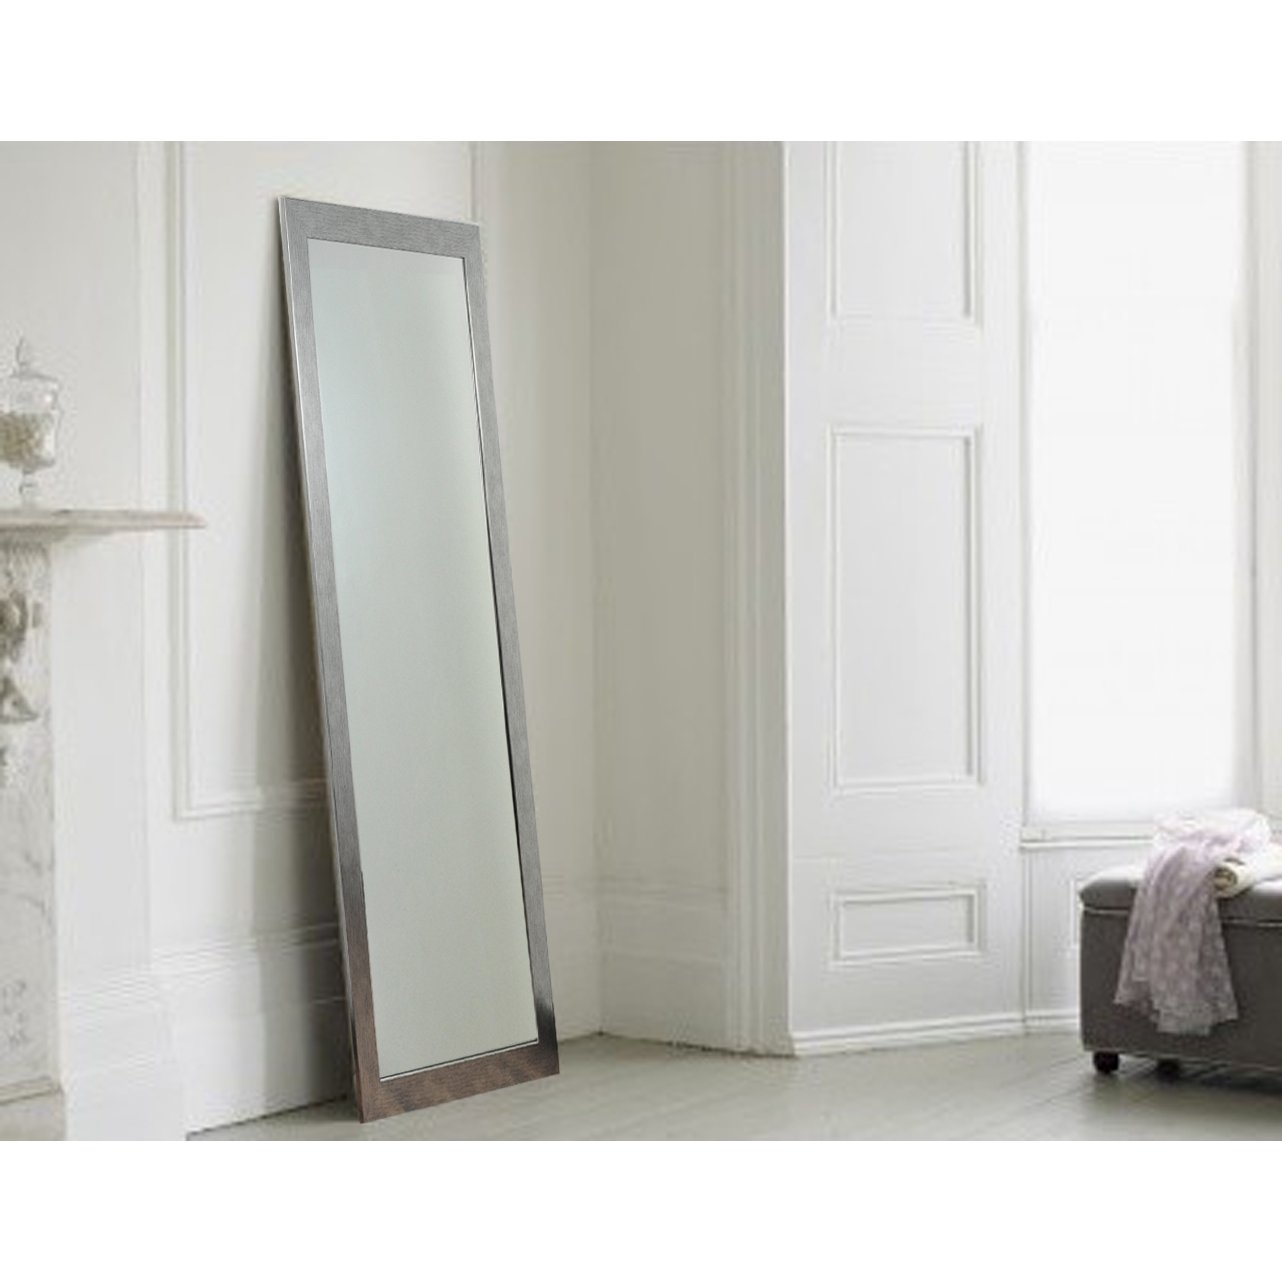 Brandtworksllc Stainless Grain Silver Tall Floor Mirror Wayfair Pertaining To Tall Silver Mirror (View 11 of 15)